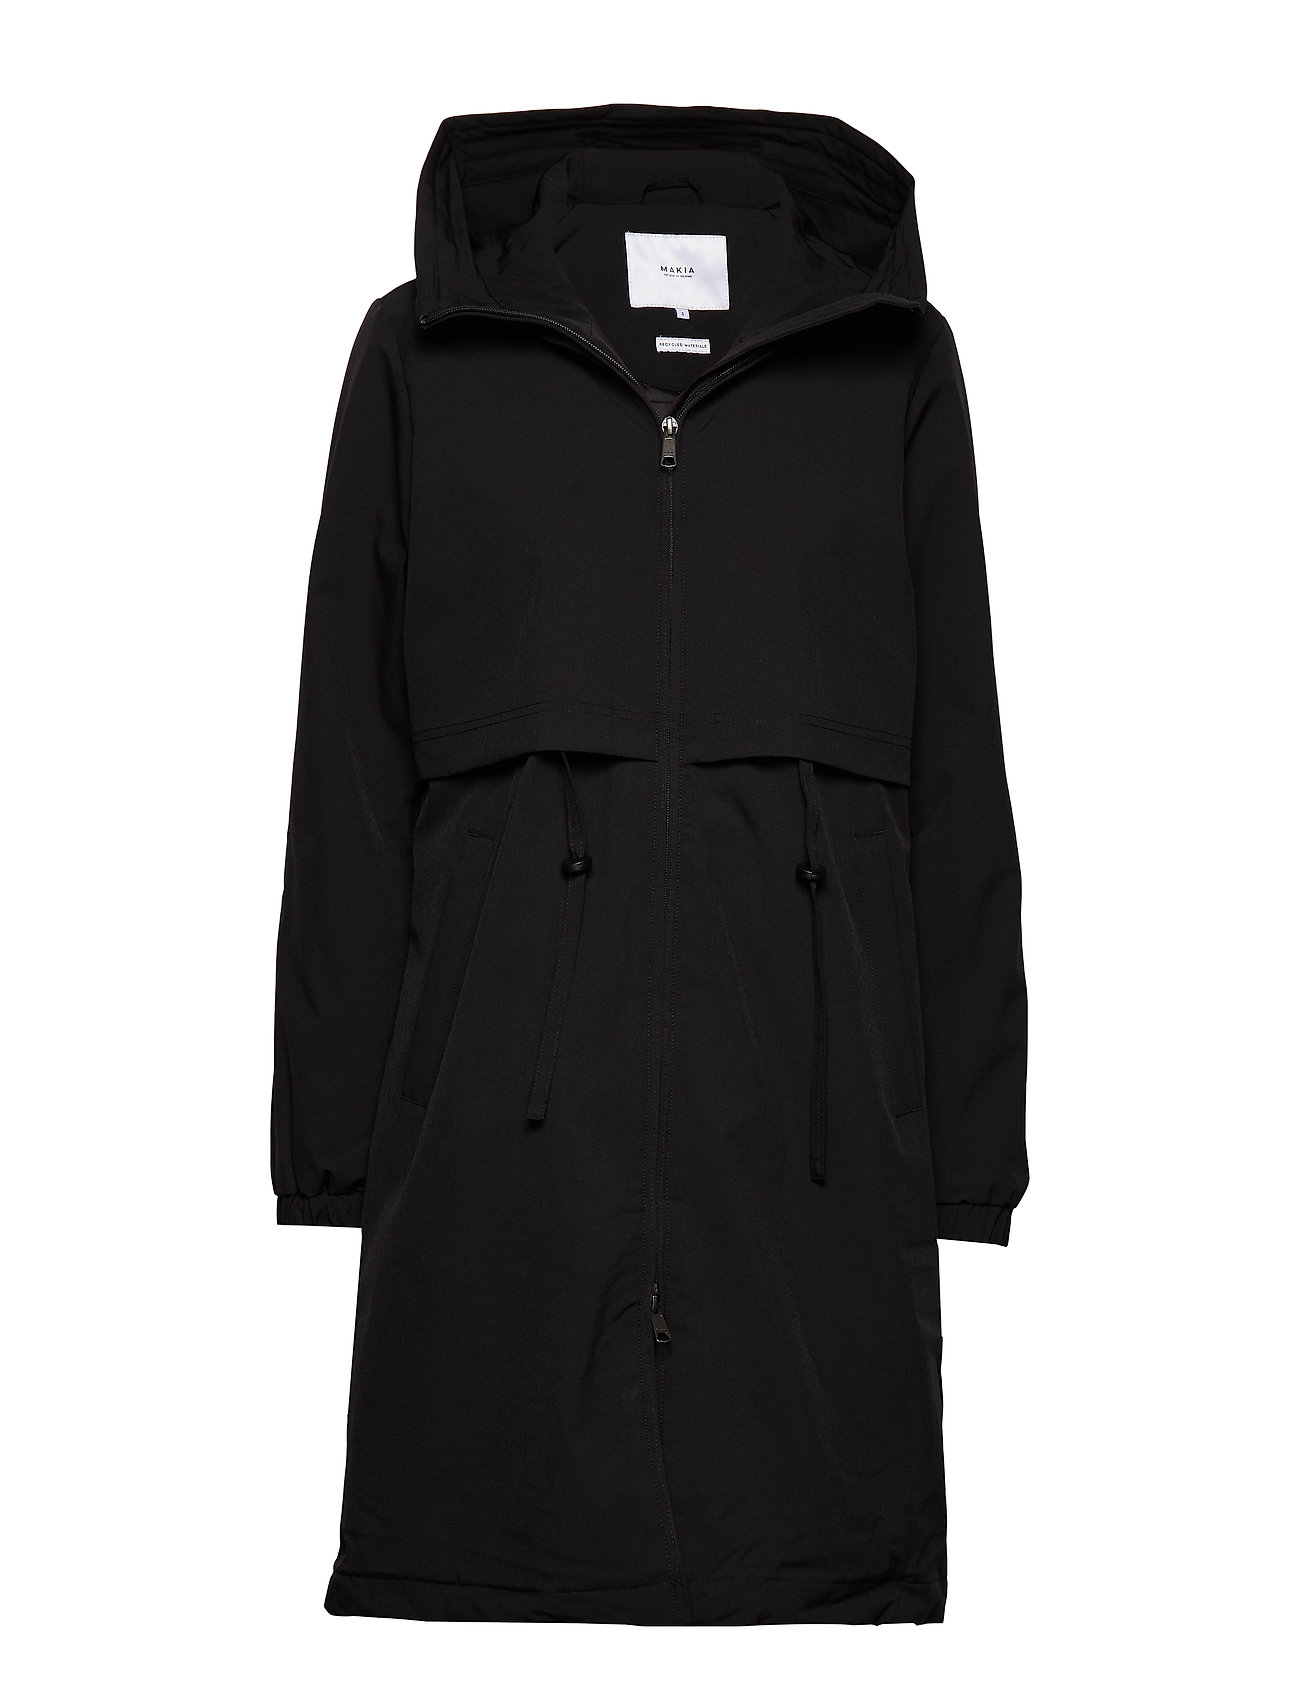 Makia Vuono Coat - BLACK